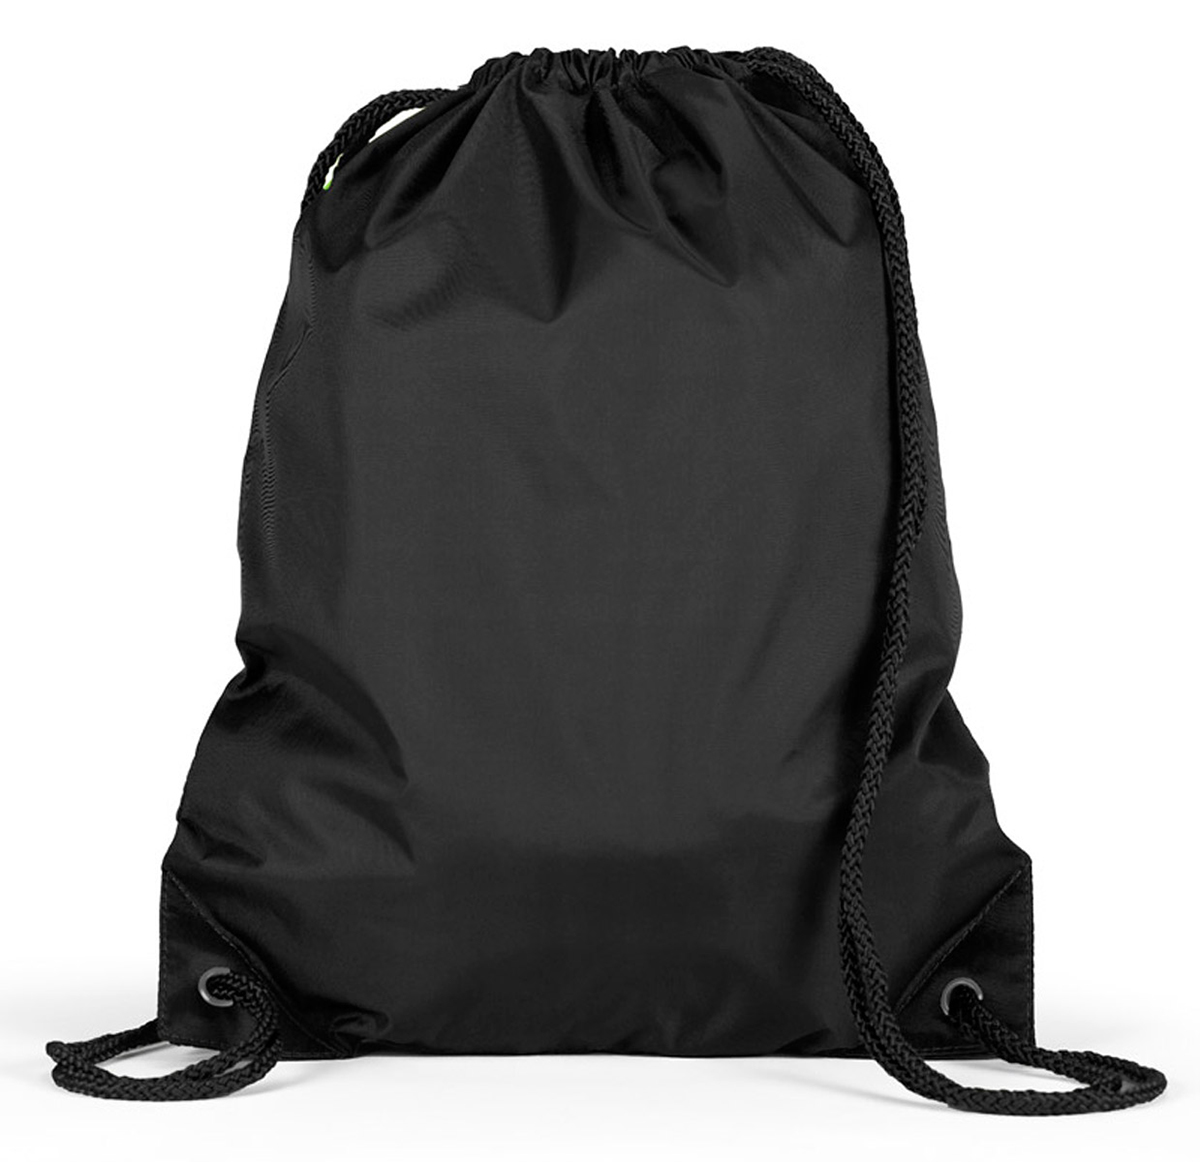 ULTRACLUB UC881 Drawstring Lightweight Grommet Sport BackPack